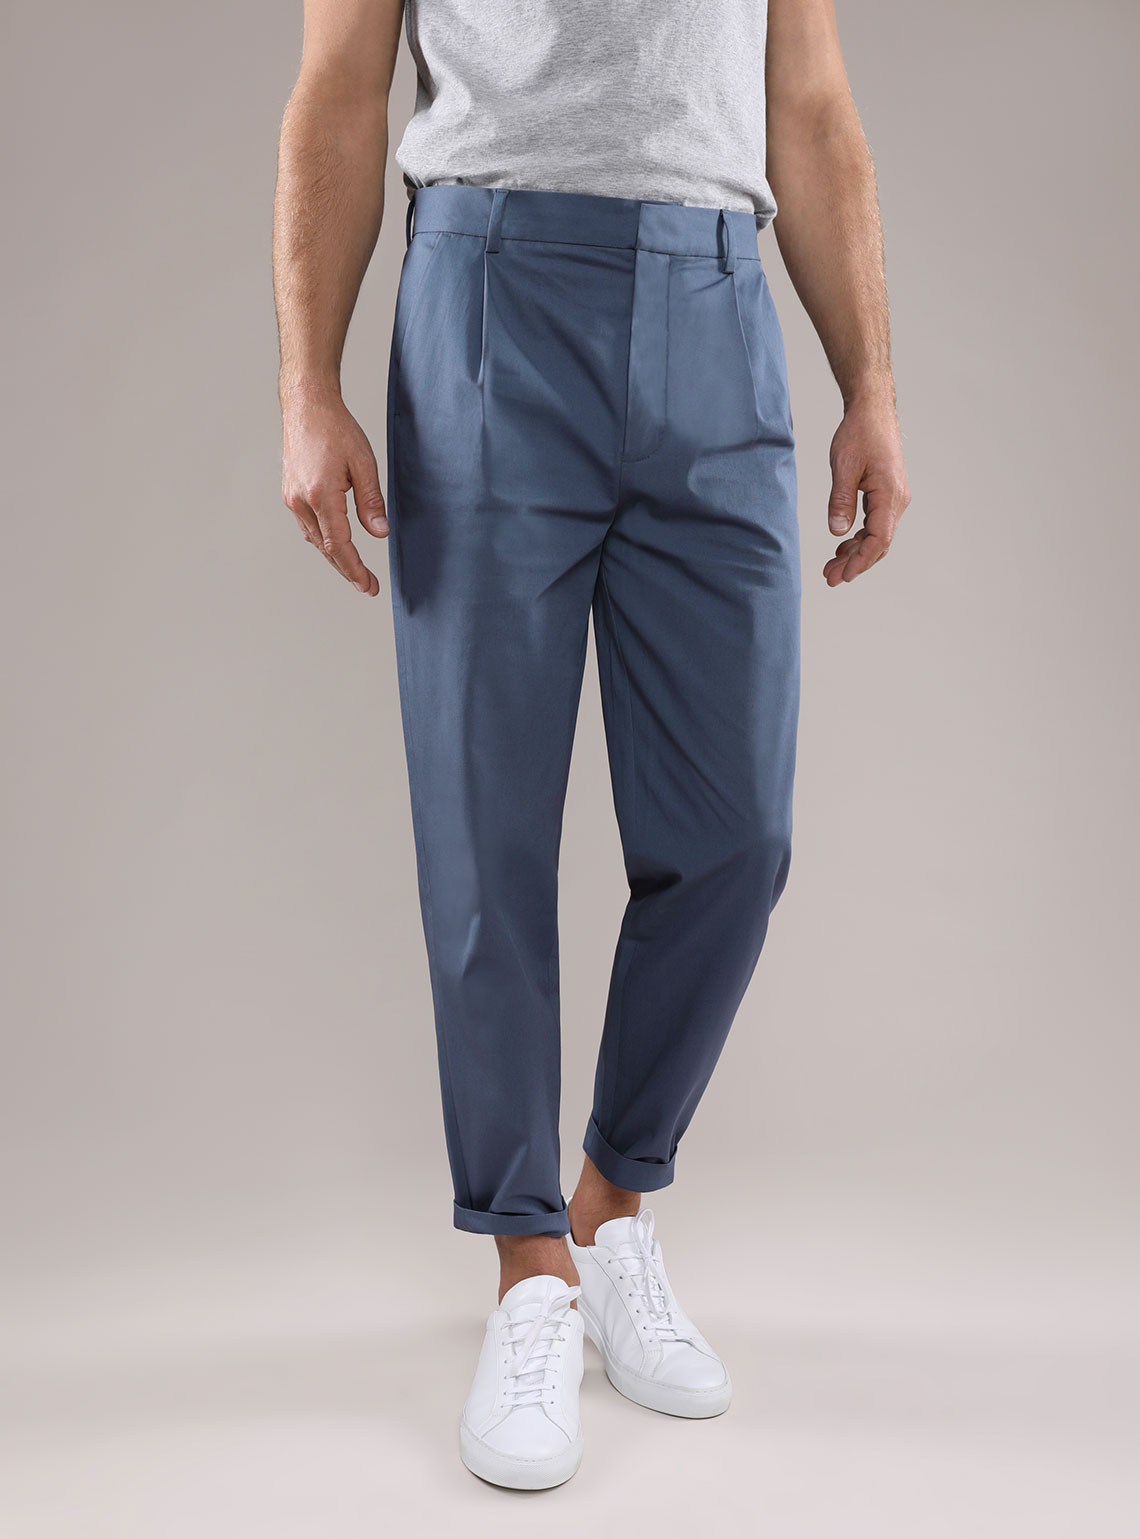 Mens Twill Cotton Pleated Pants